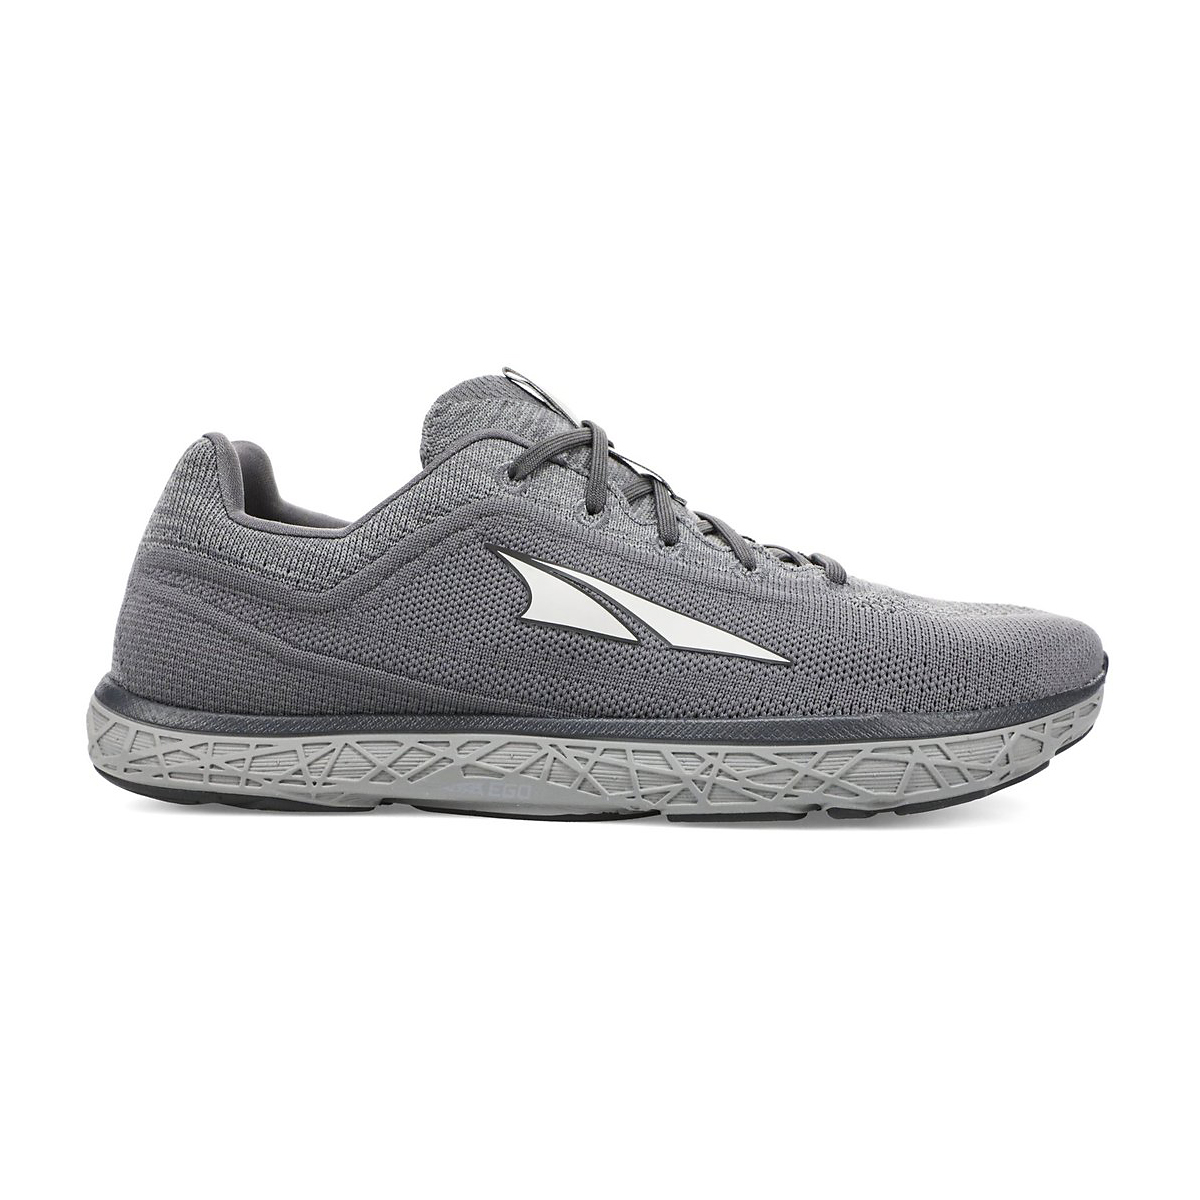 Men's Altra Escalante 2.5 Running Shoe - Color: Gray - Size: 7 - Width: Regular, Gray, large, image 1